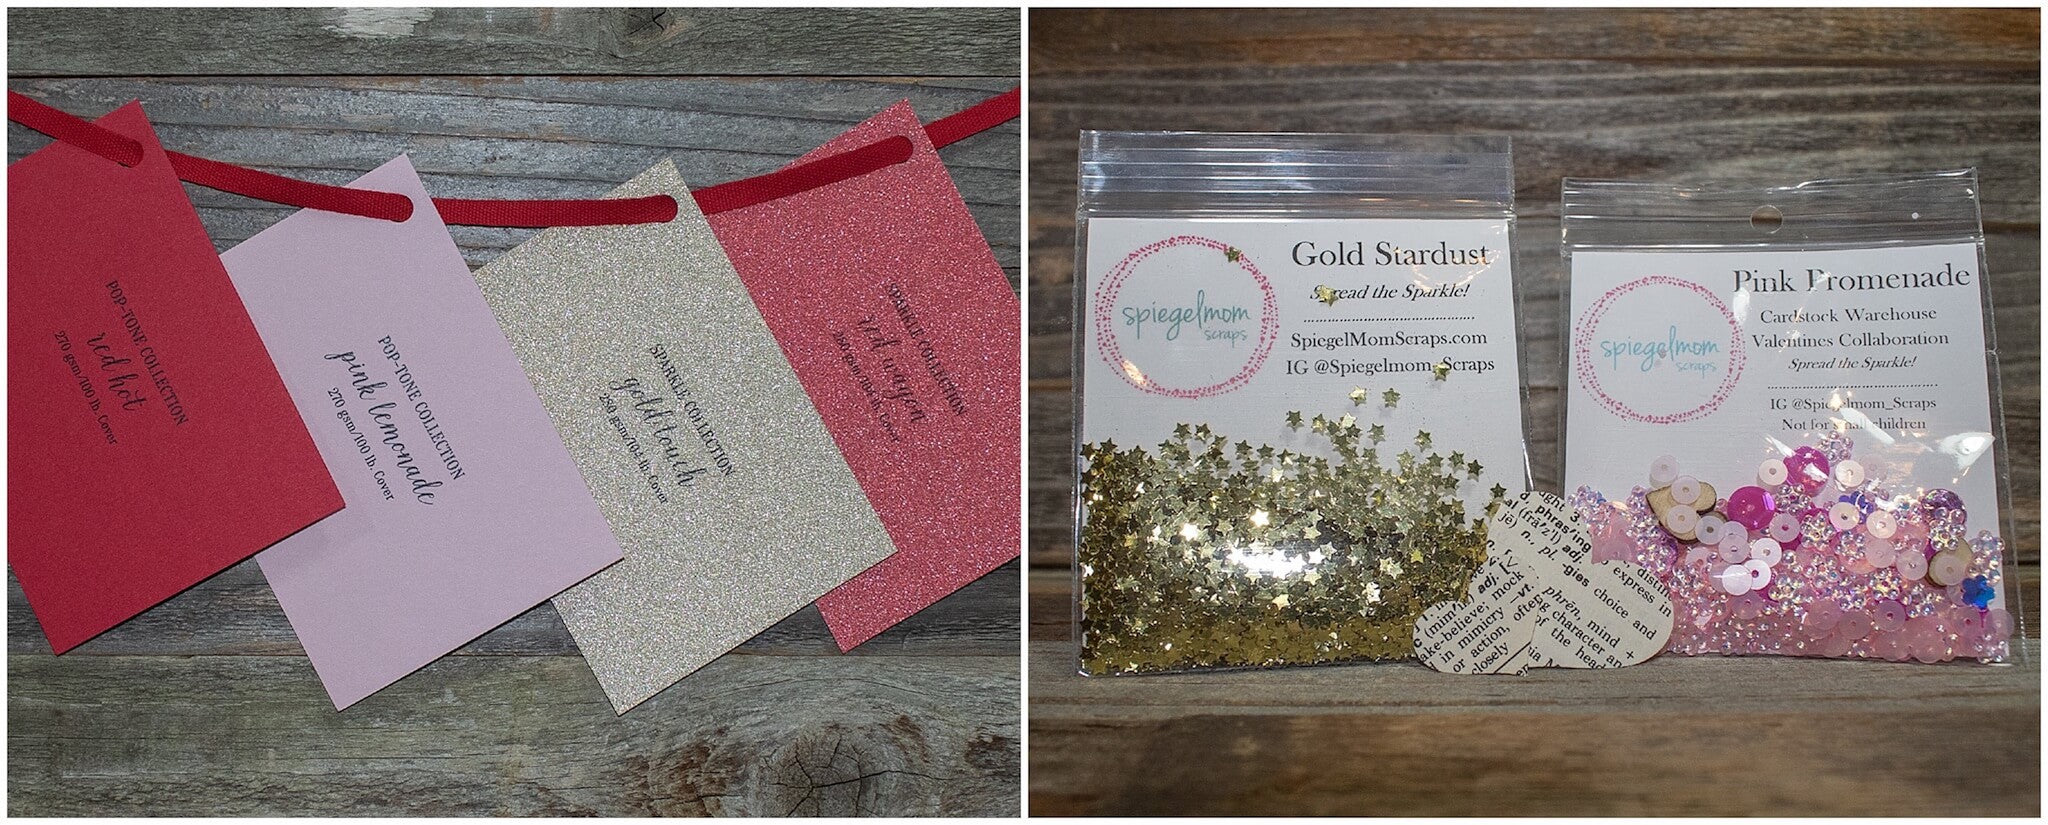 Valentine Cardstock Paper Shaker Cards Cardstock Warehouse Swatches With Sequins